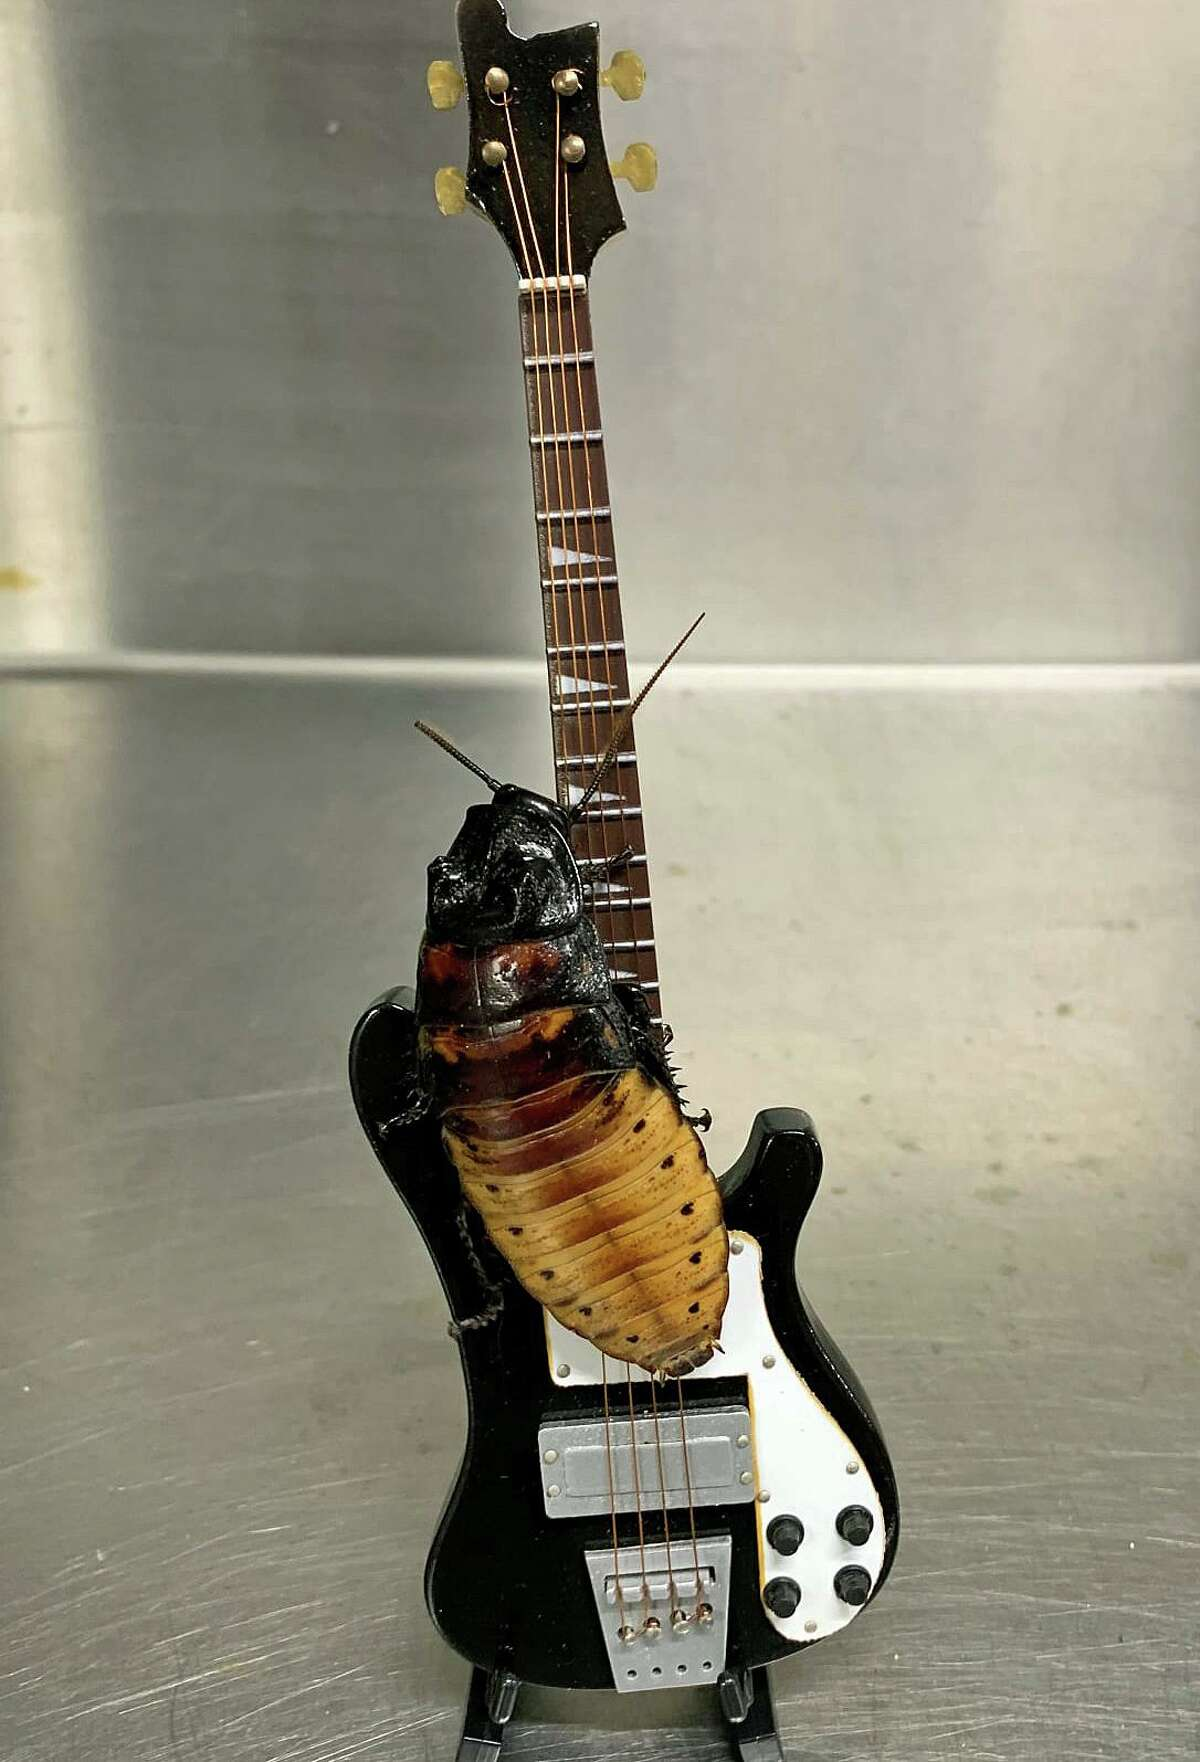 Keith Richards had an unexpected tribute this week when a cockroach was named in his honor on the legendary Rolling Stone rocker on his 77th birthday. Keith the cockroach even has his own miniature guitar. The cockroach and its instrument, however won't be living with Keith in his Weston home. It will be on display at the Children's Museum in West Hartford.